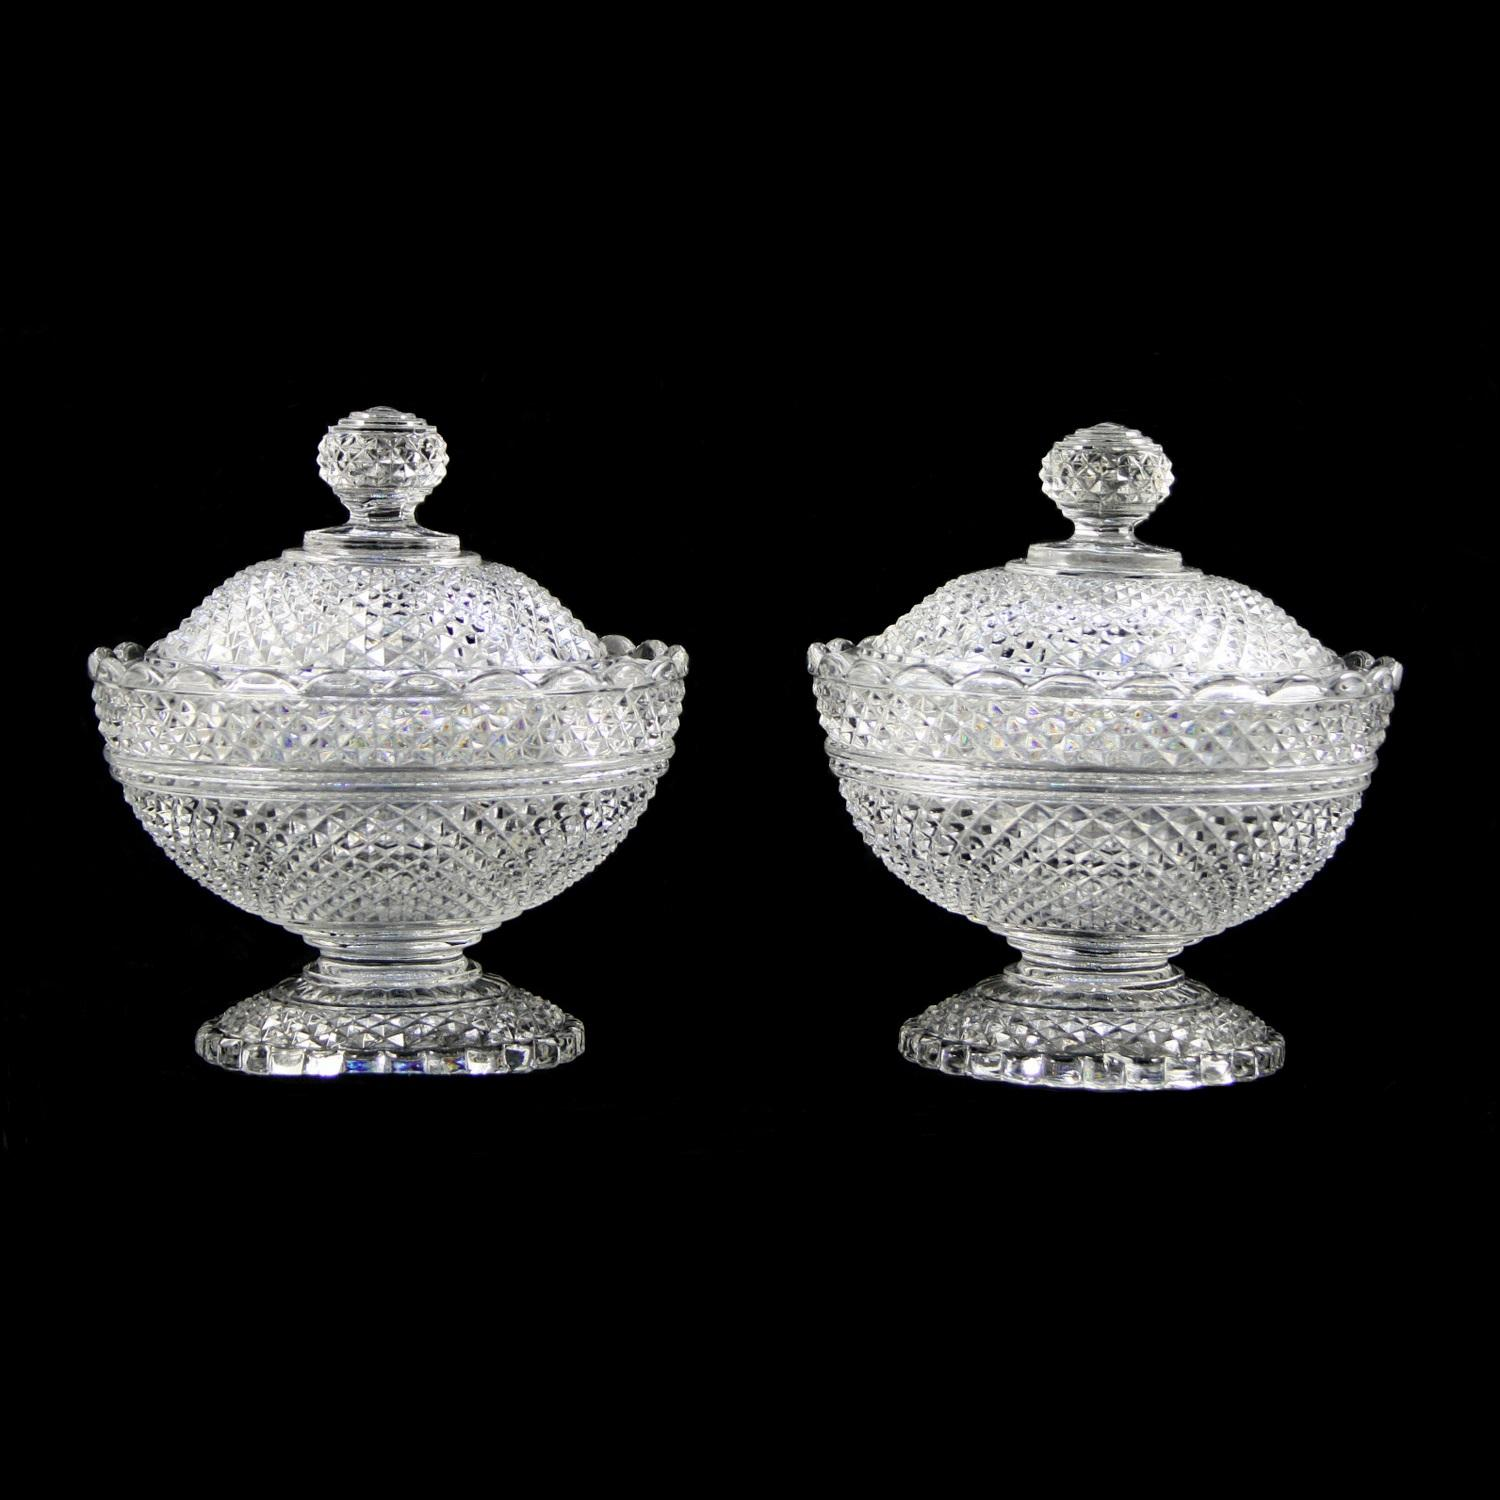 Pair of Baccarat Crystal Bonbonnières